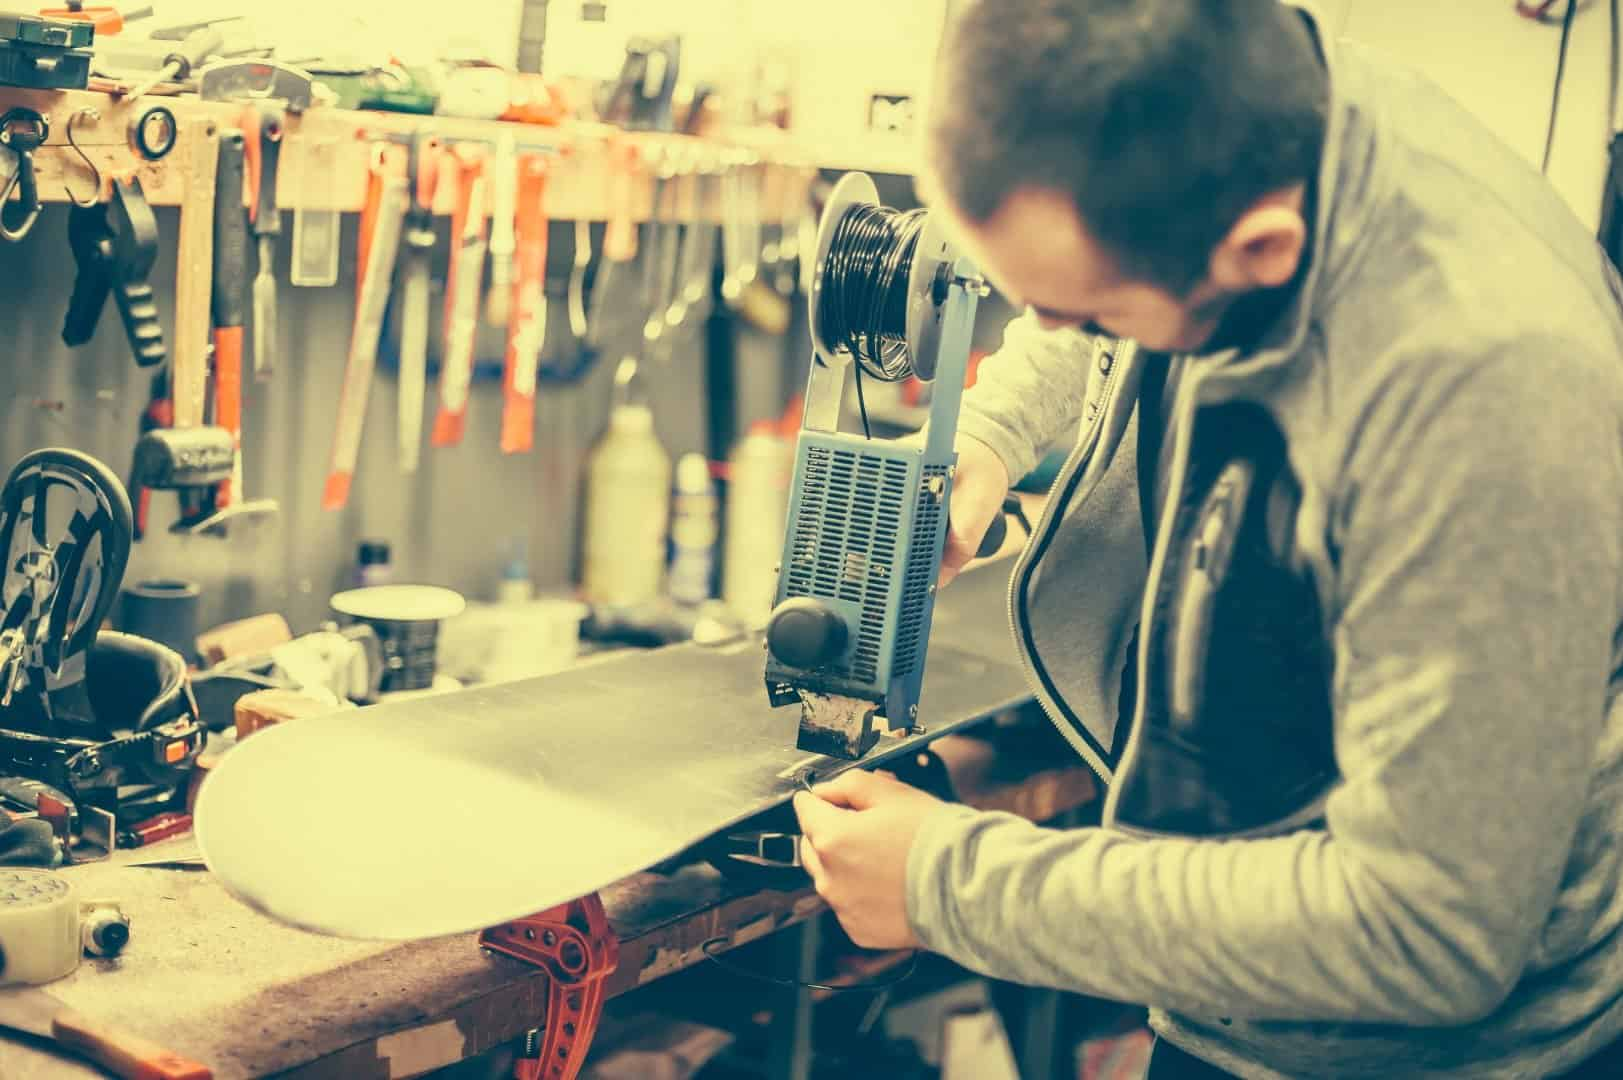 Waxing a snowboard on a repair shop